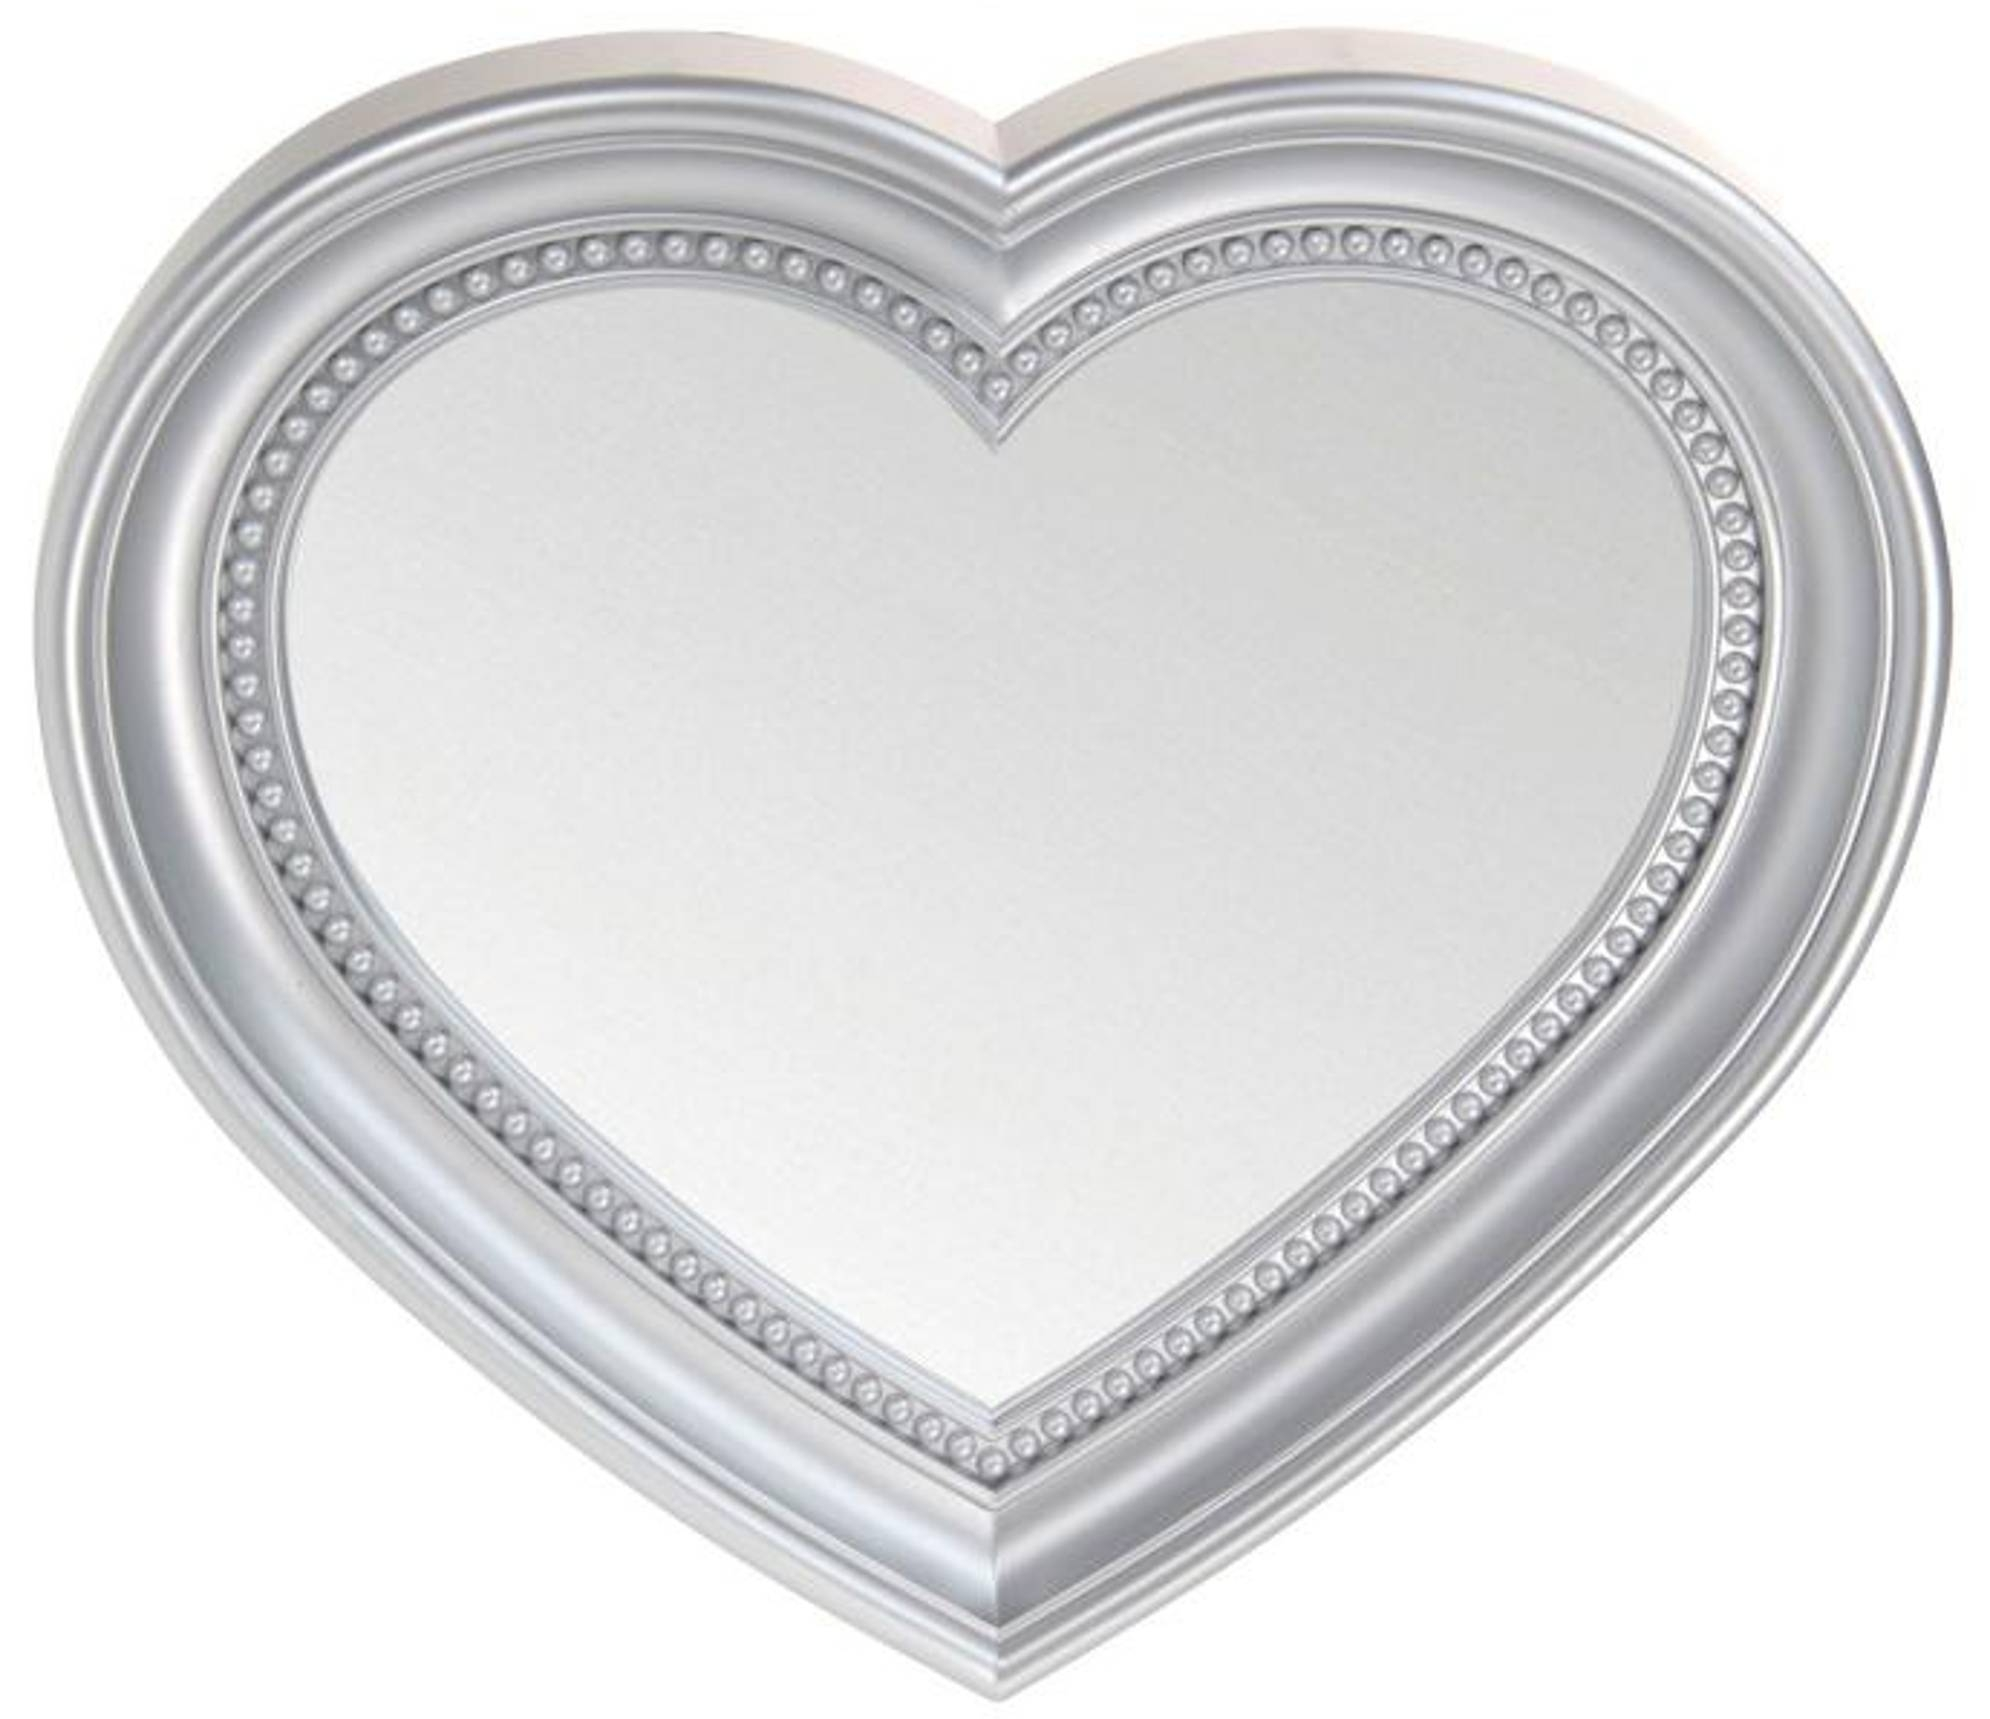 Heart Shaped Wall Hanging Mirror, Silver 45Cm | Blendboutique inside Heart Wall Mirrors (Image 12 of 25)